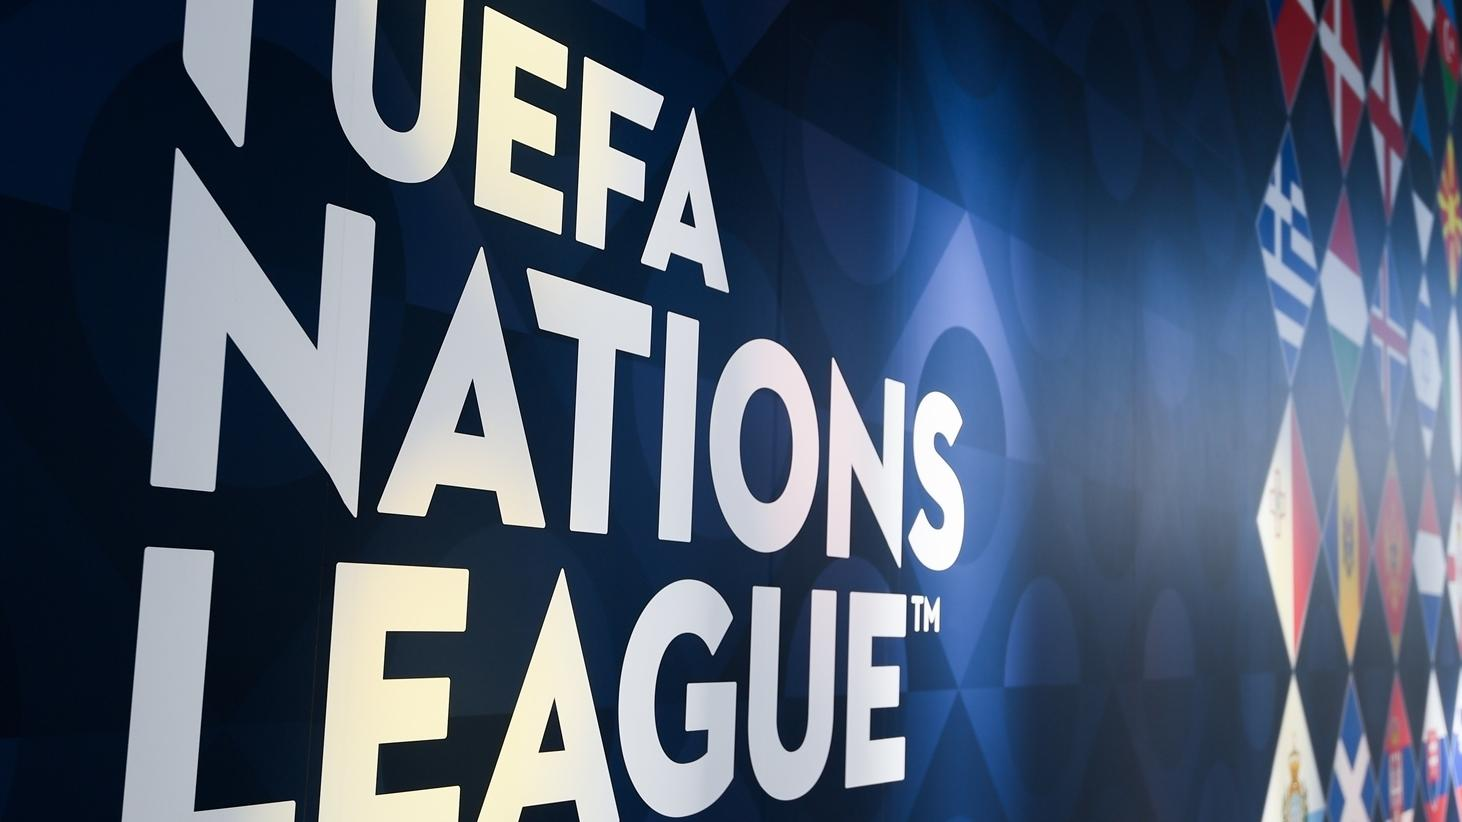 Uefa Nations League All You Need To Know Uefa Nations League Uefa Com